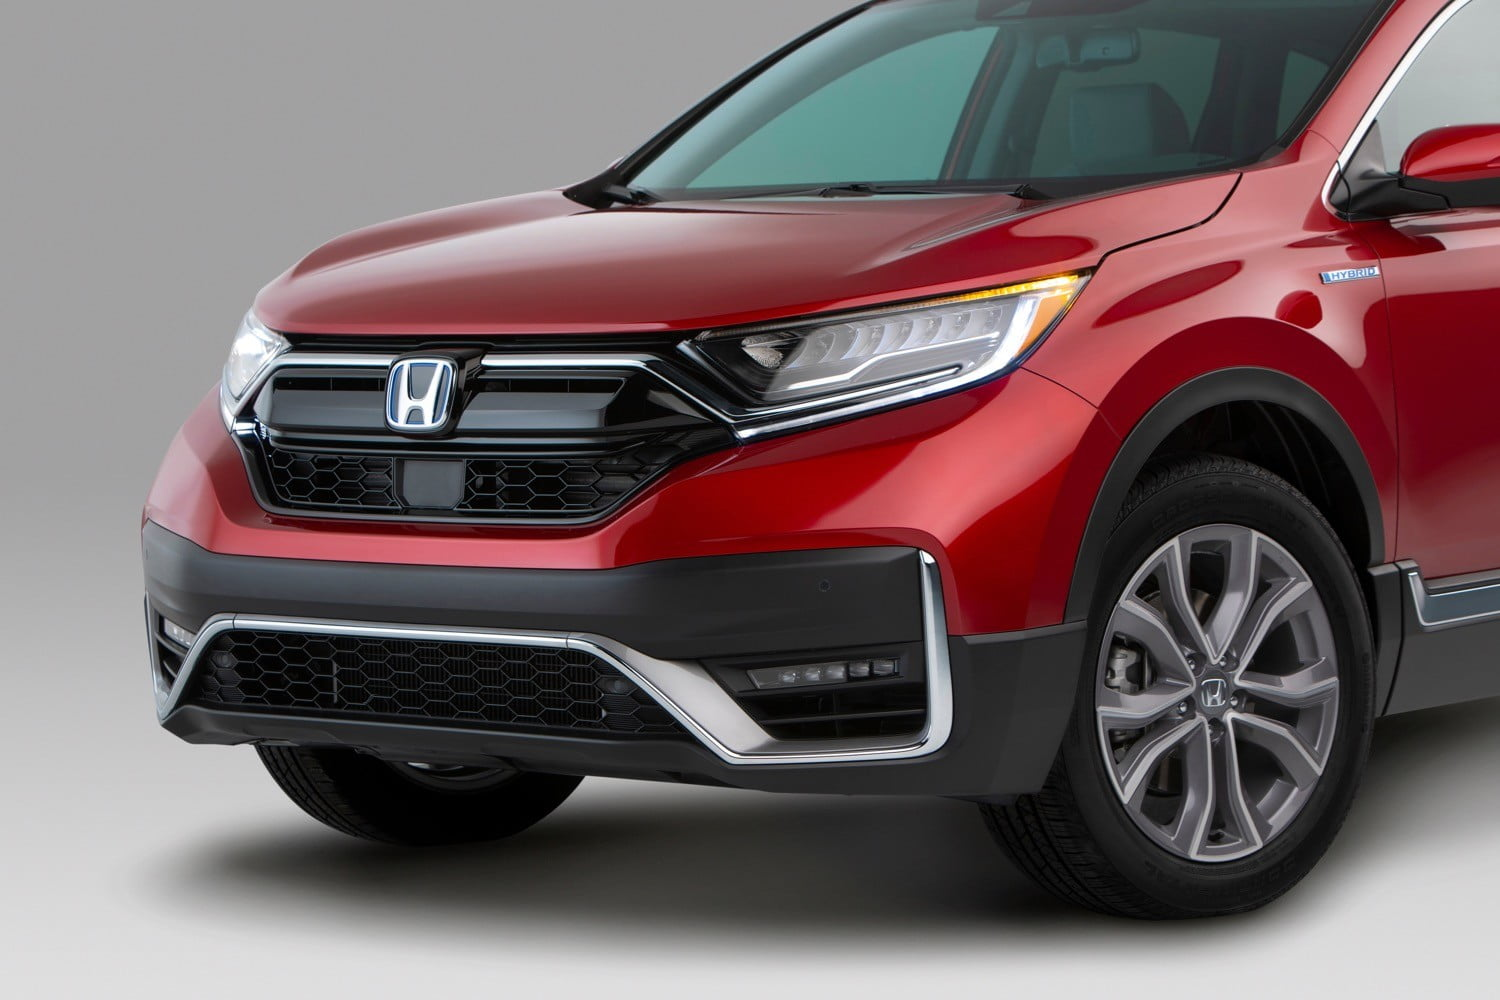 The Honda CR-V Hybrid is more important than you think